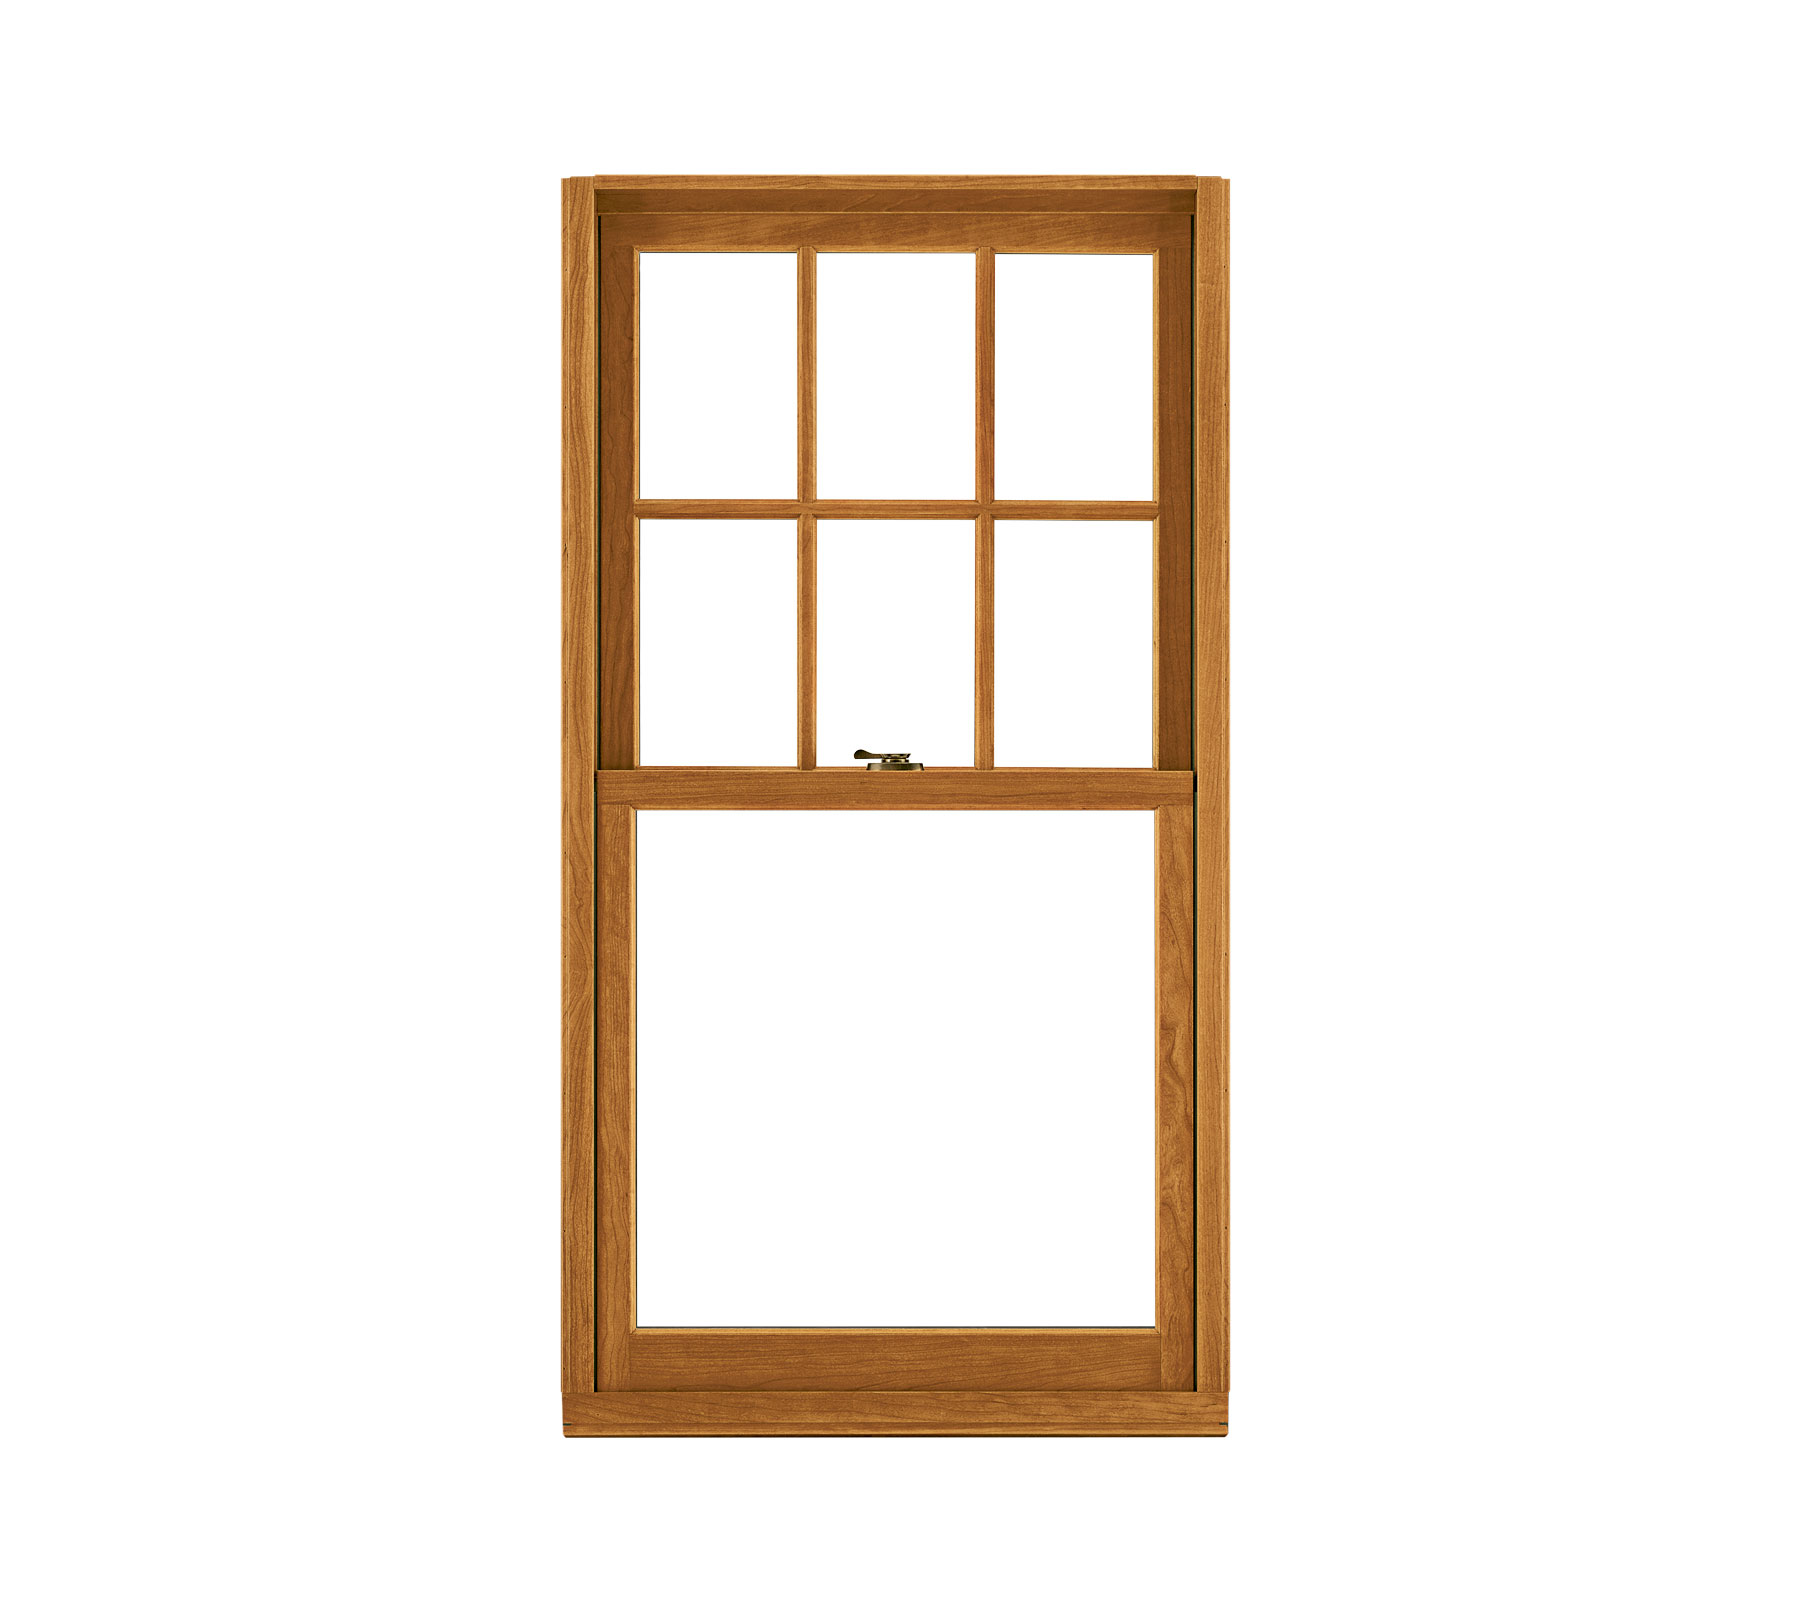 Types of Windows - Double Hung Window